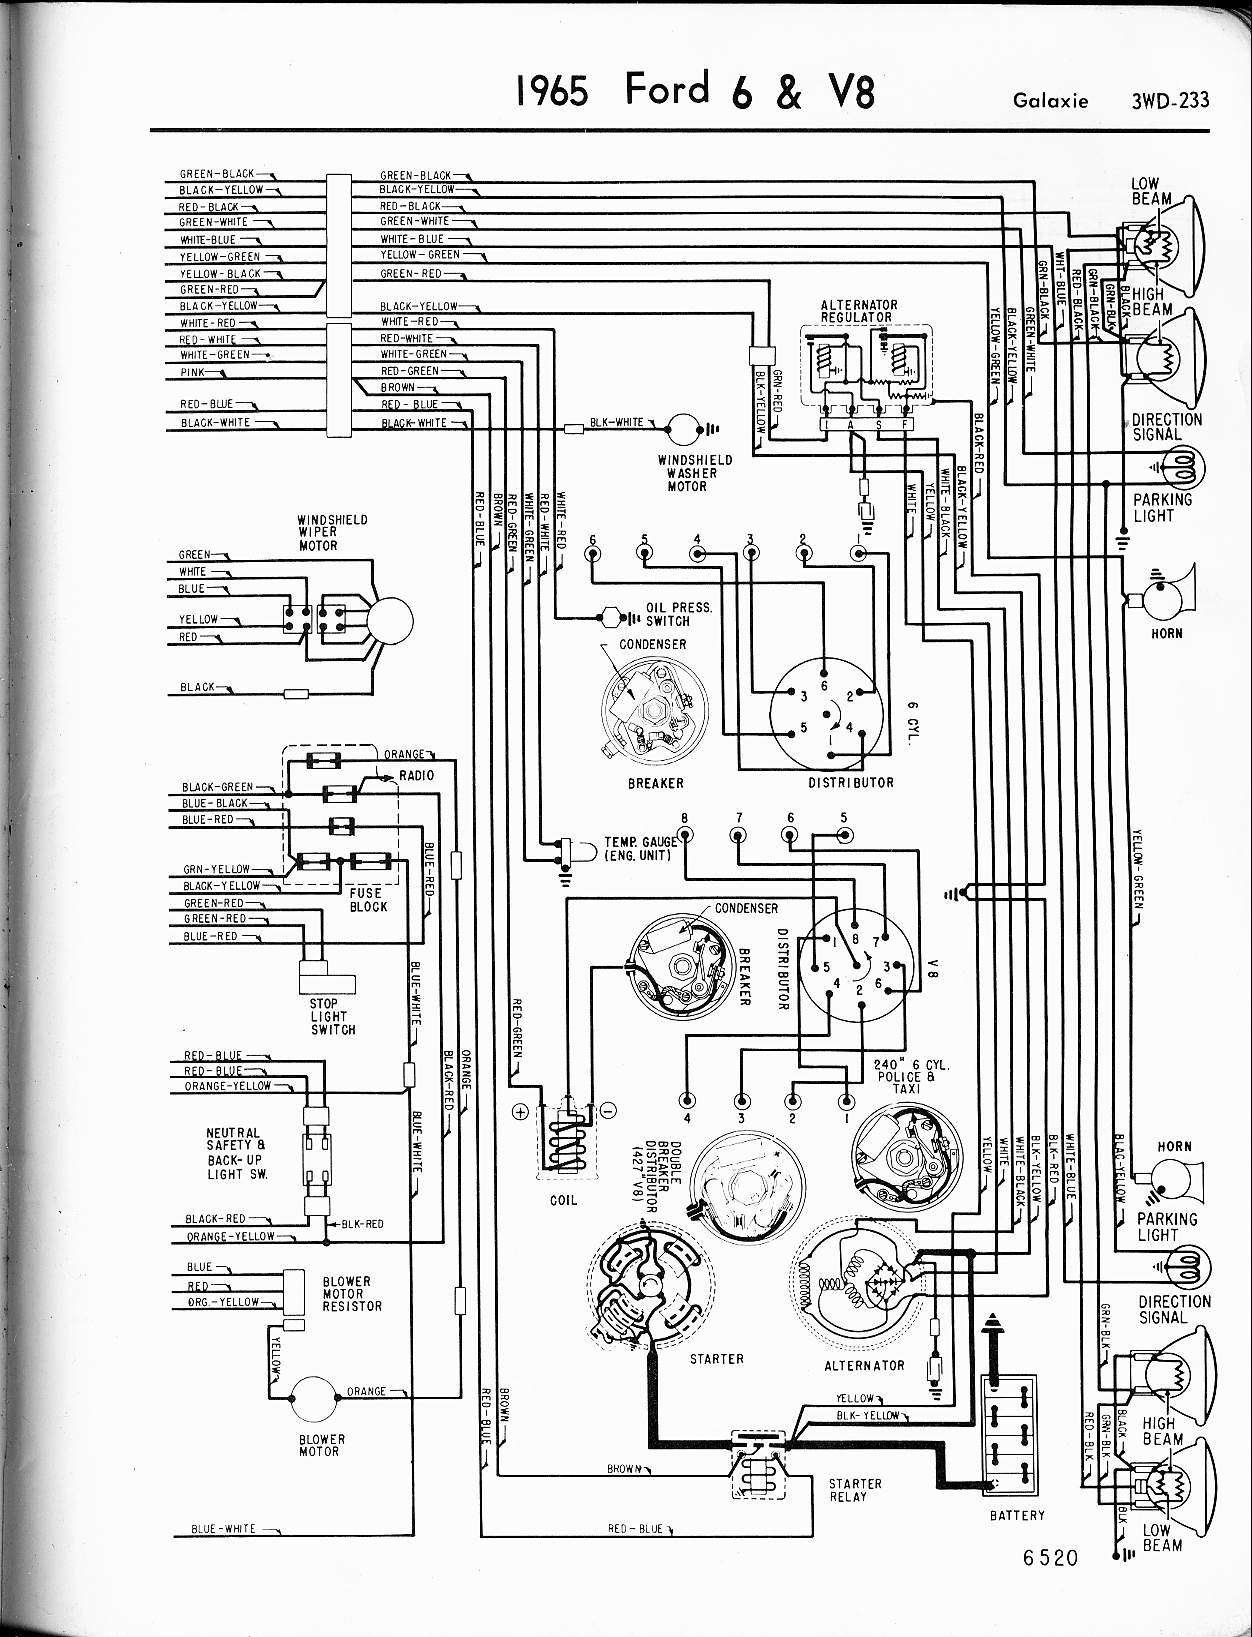 1964 Ford Galaxie Ignition Wiring - Wiring Diagram K8 Falcon Ignition Switch Wiring Diagram on